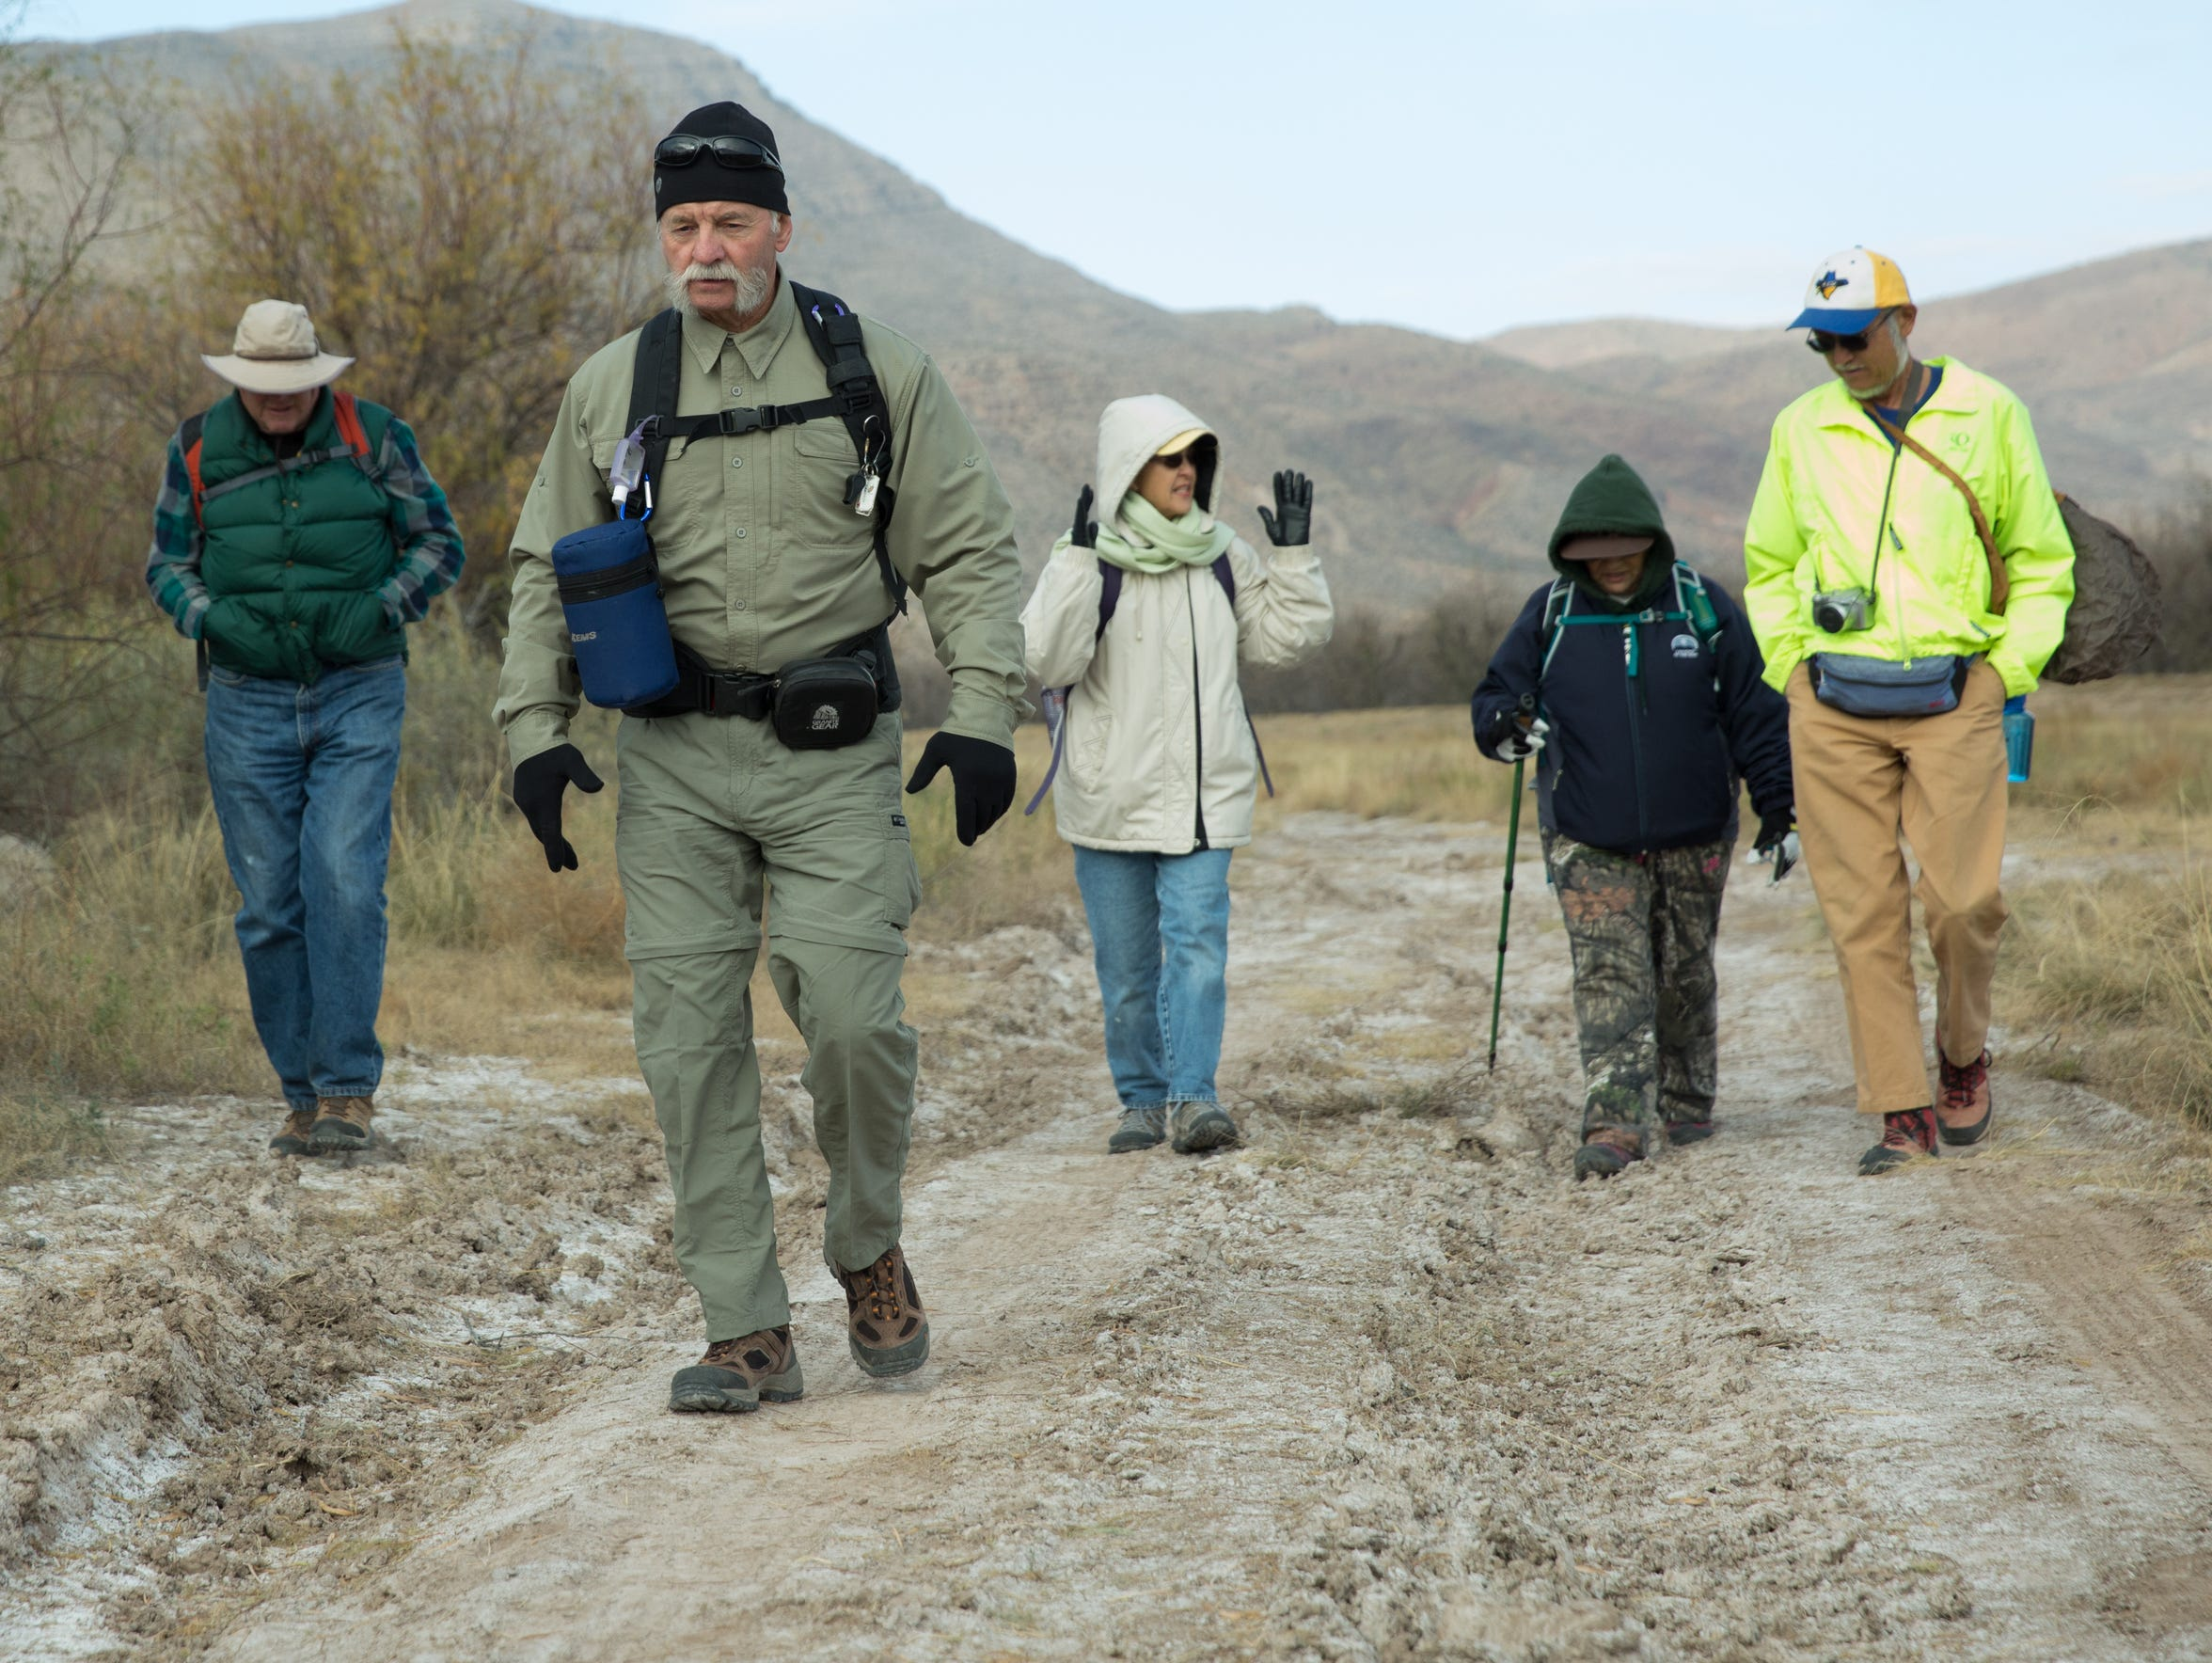 A group of hikers participate in a hiking group meant